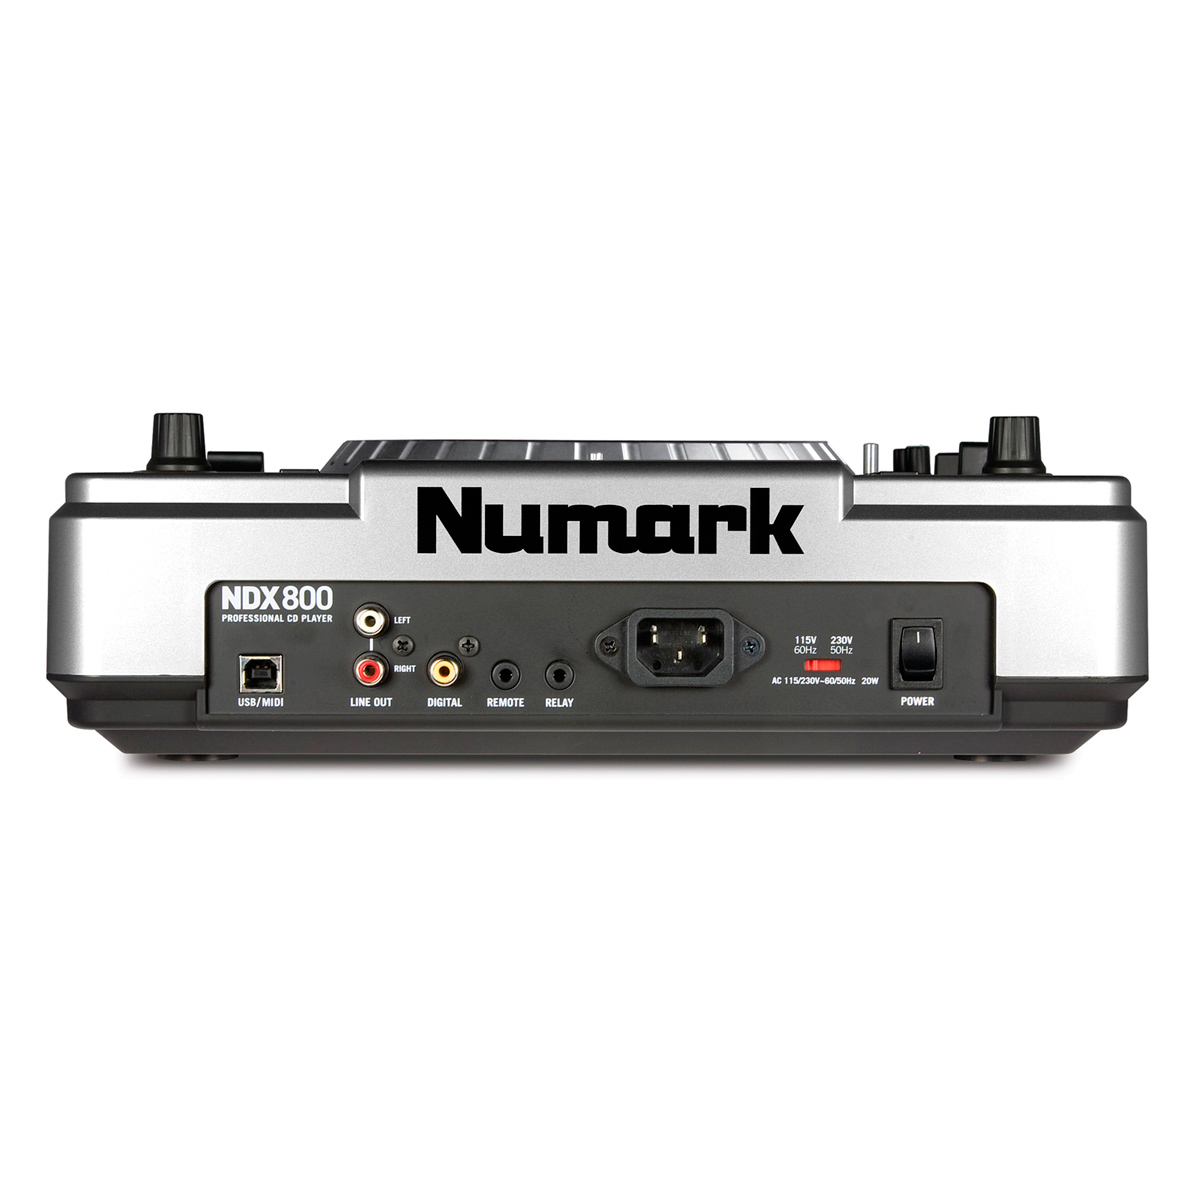 NDX800 - CDJ Player c/ USB NDX 800 - Numark